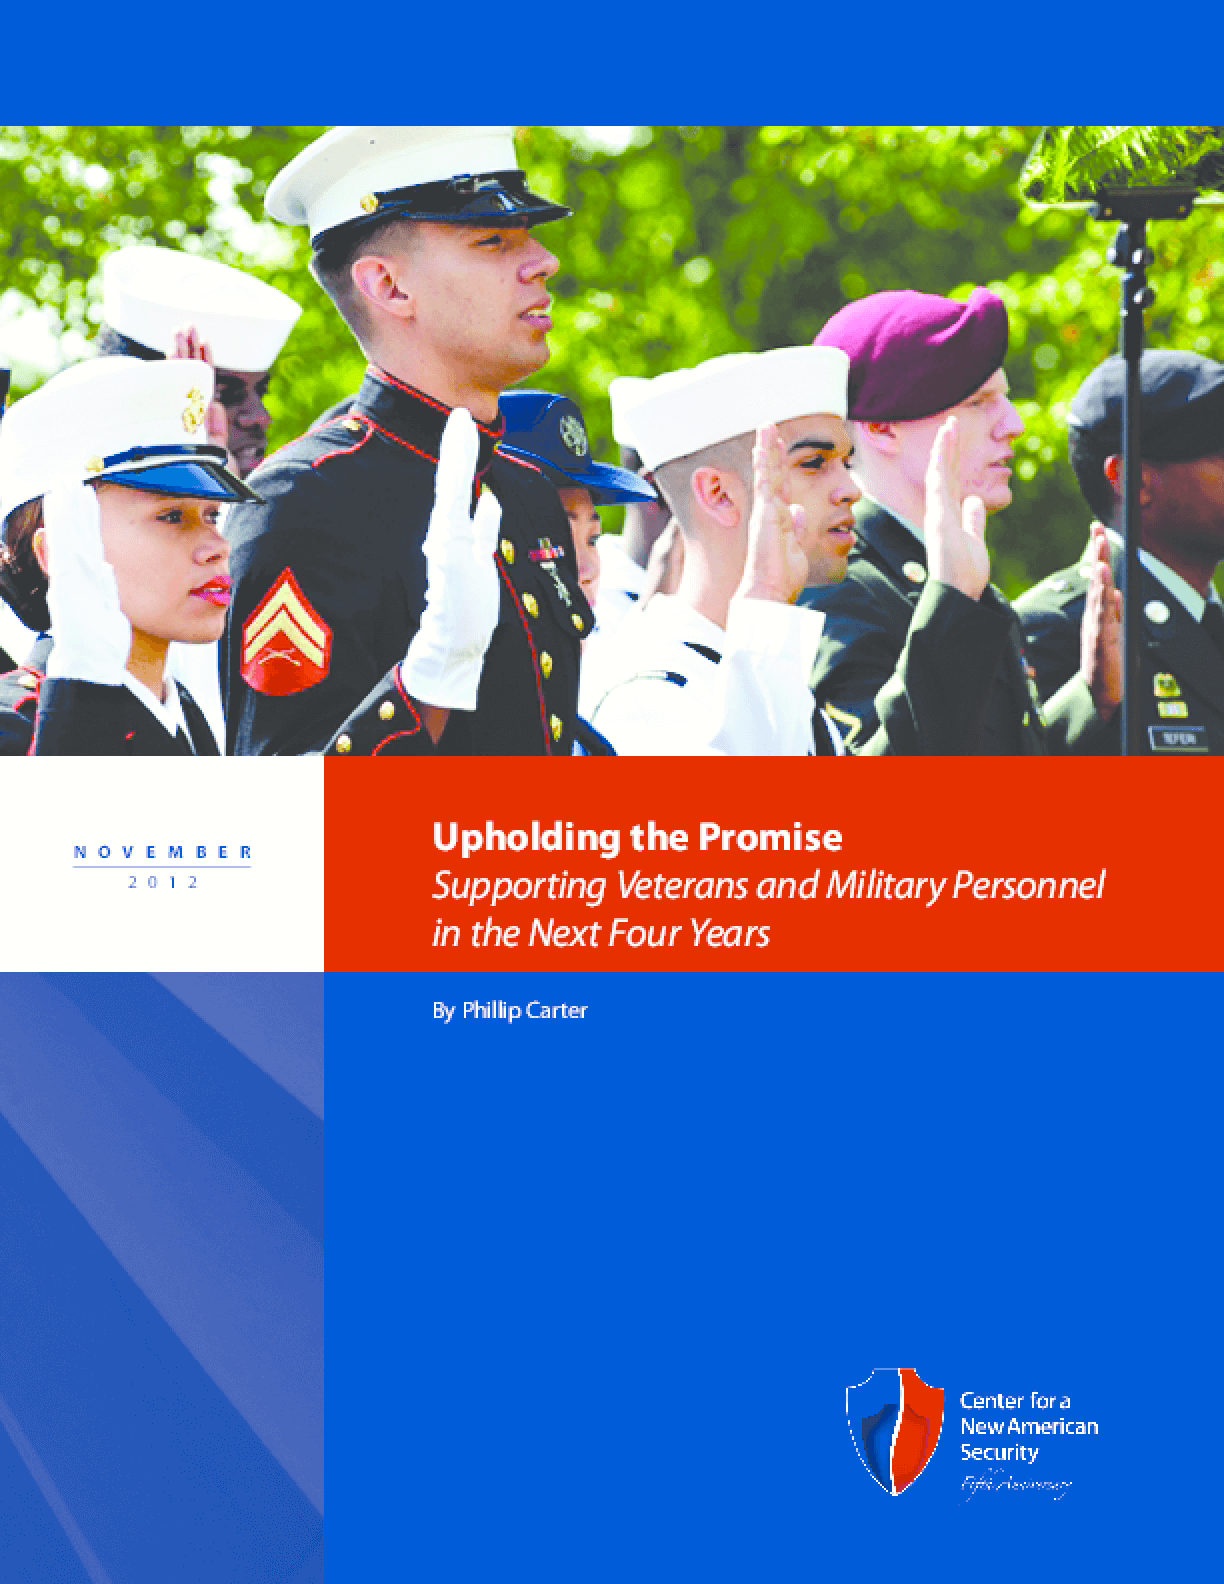 Upholding the Promise: Supporting Veterans and Military Personnel in the Next Four Years